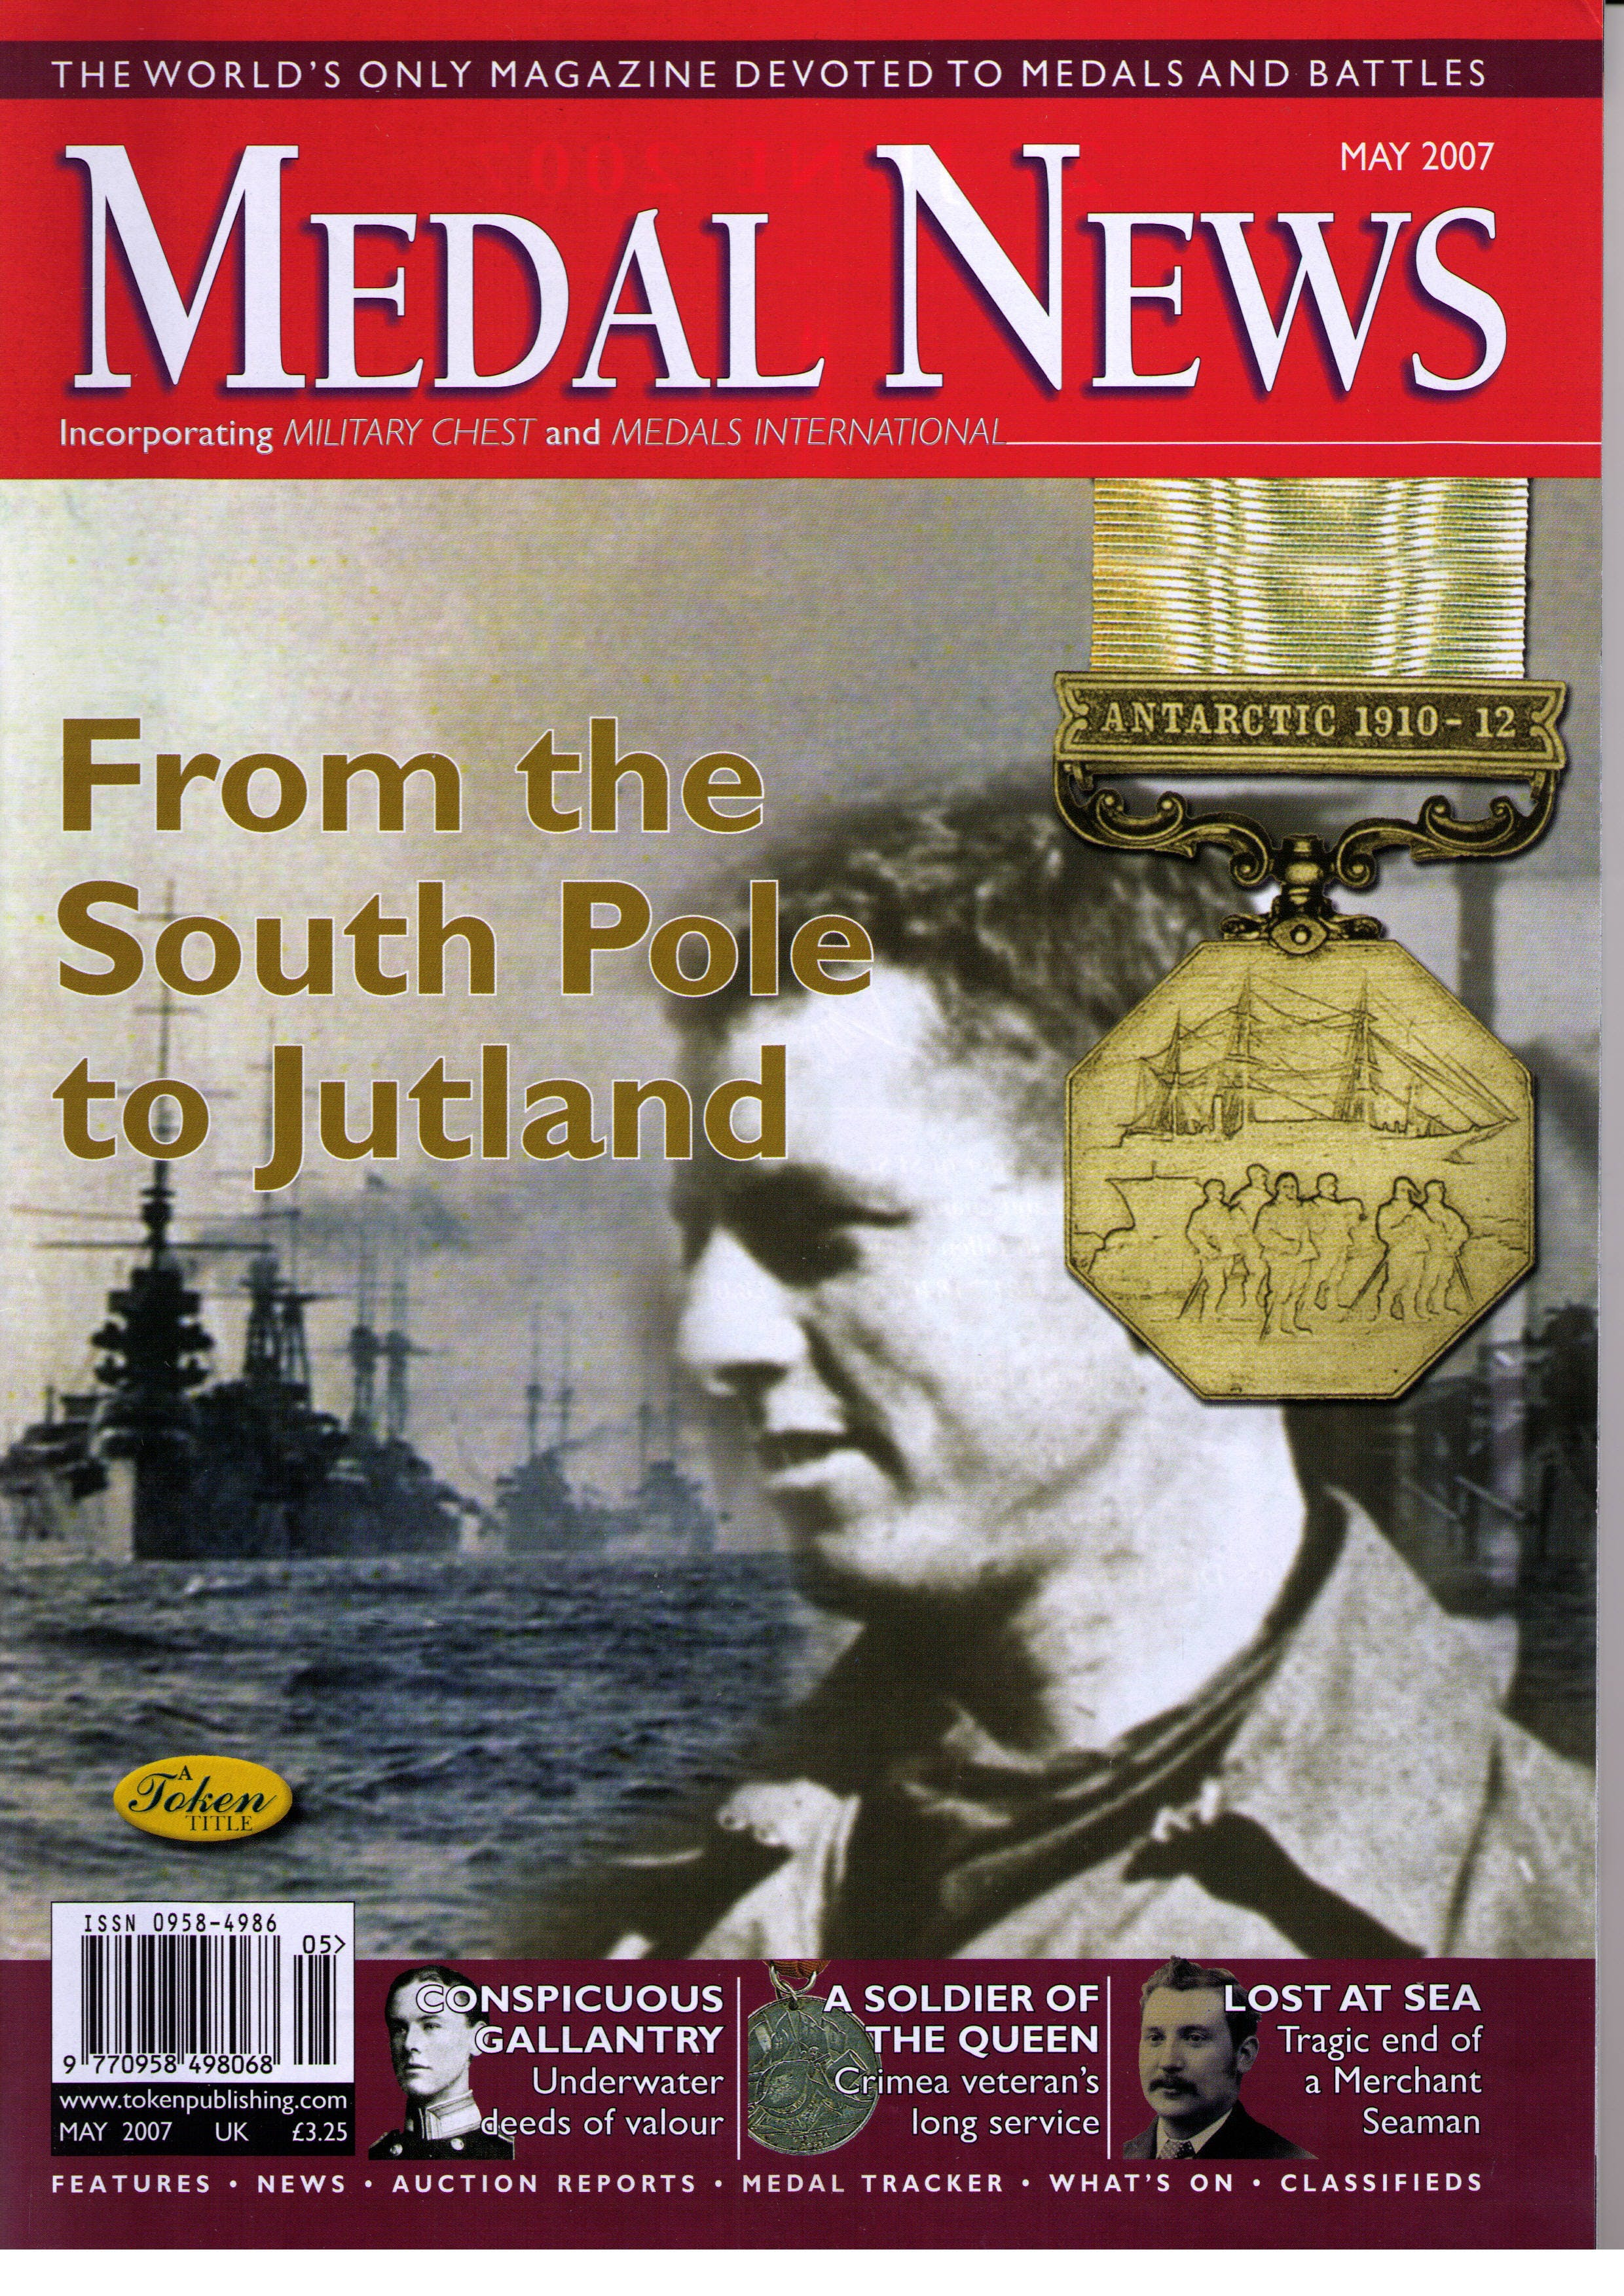 Front cover of 'Who do we think we are?', Medal News May 2007, Volume 45, Number 5 by Token Publishing